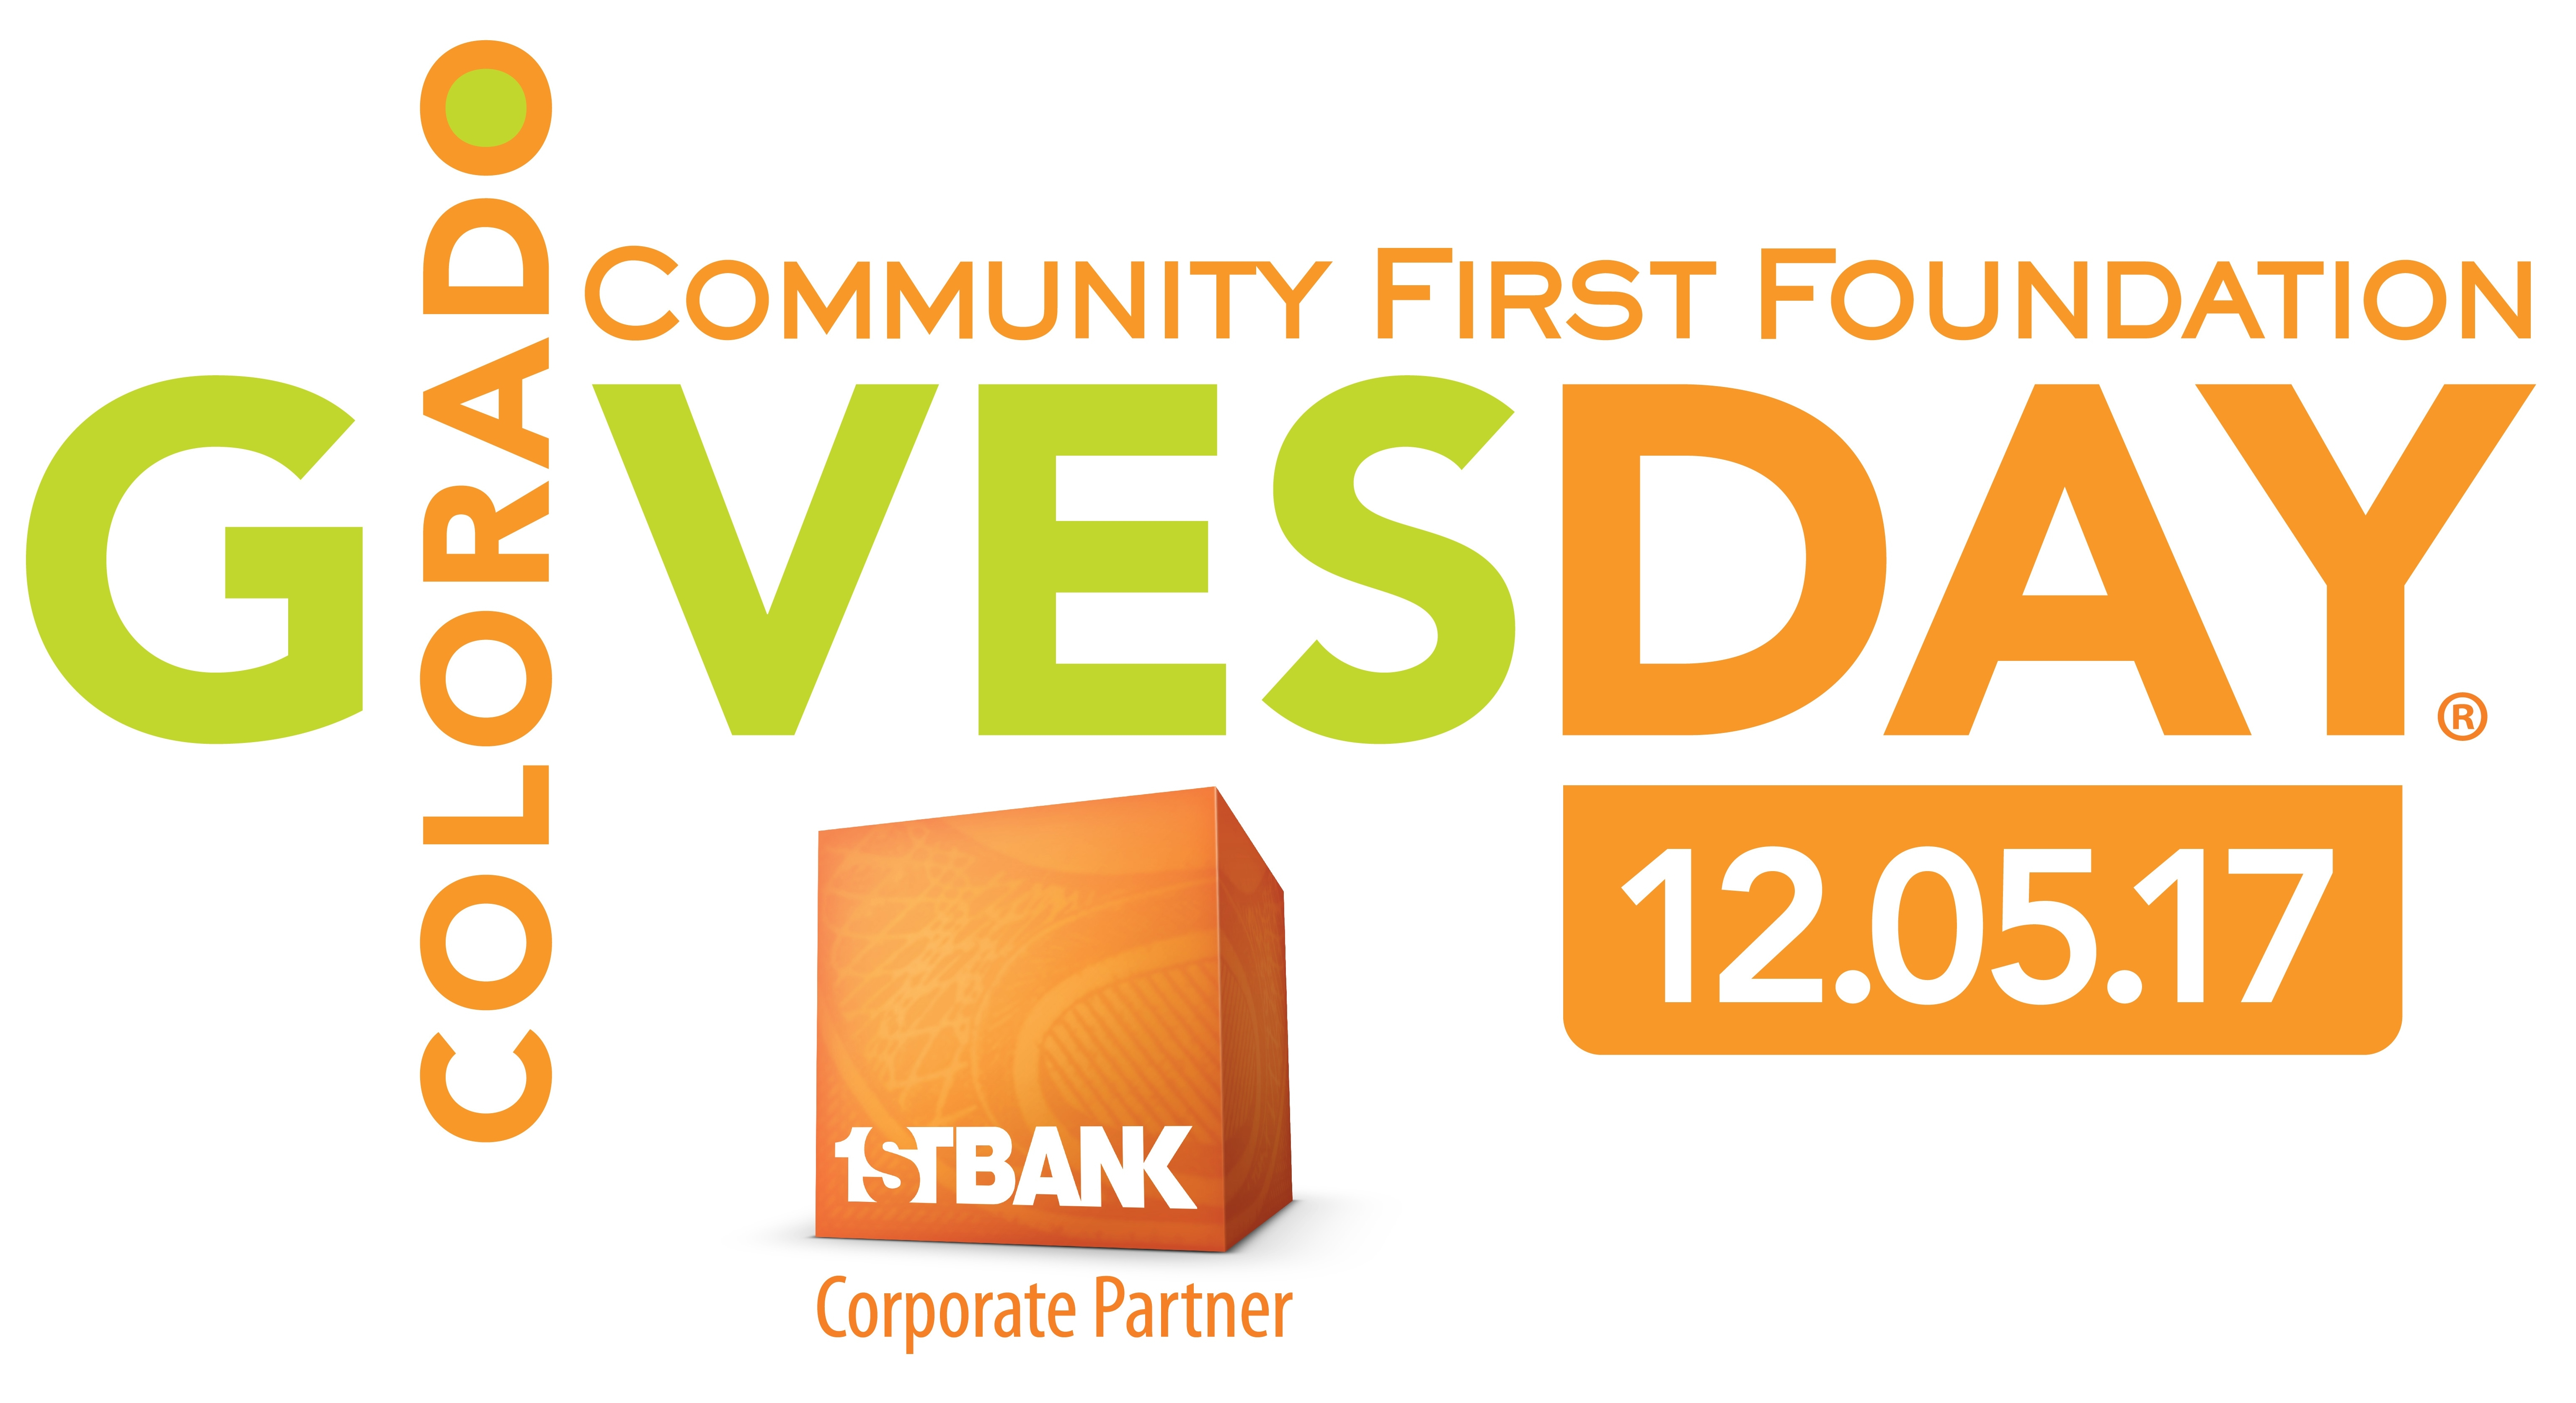 Colorado Gives Logo, First Bank logo, Community First Foundation, Colorado Gives day 12.05.17 Donate now through Colorado Gives.